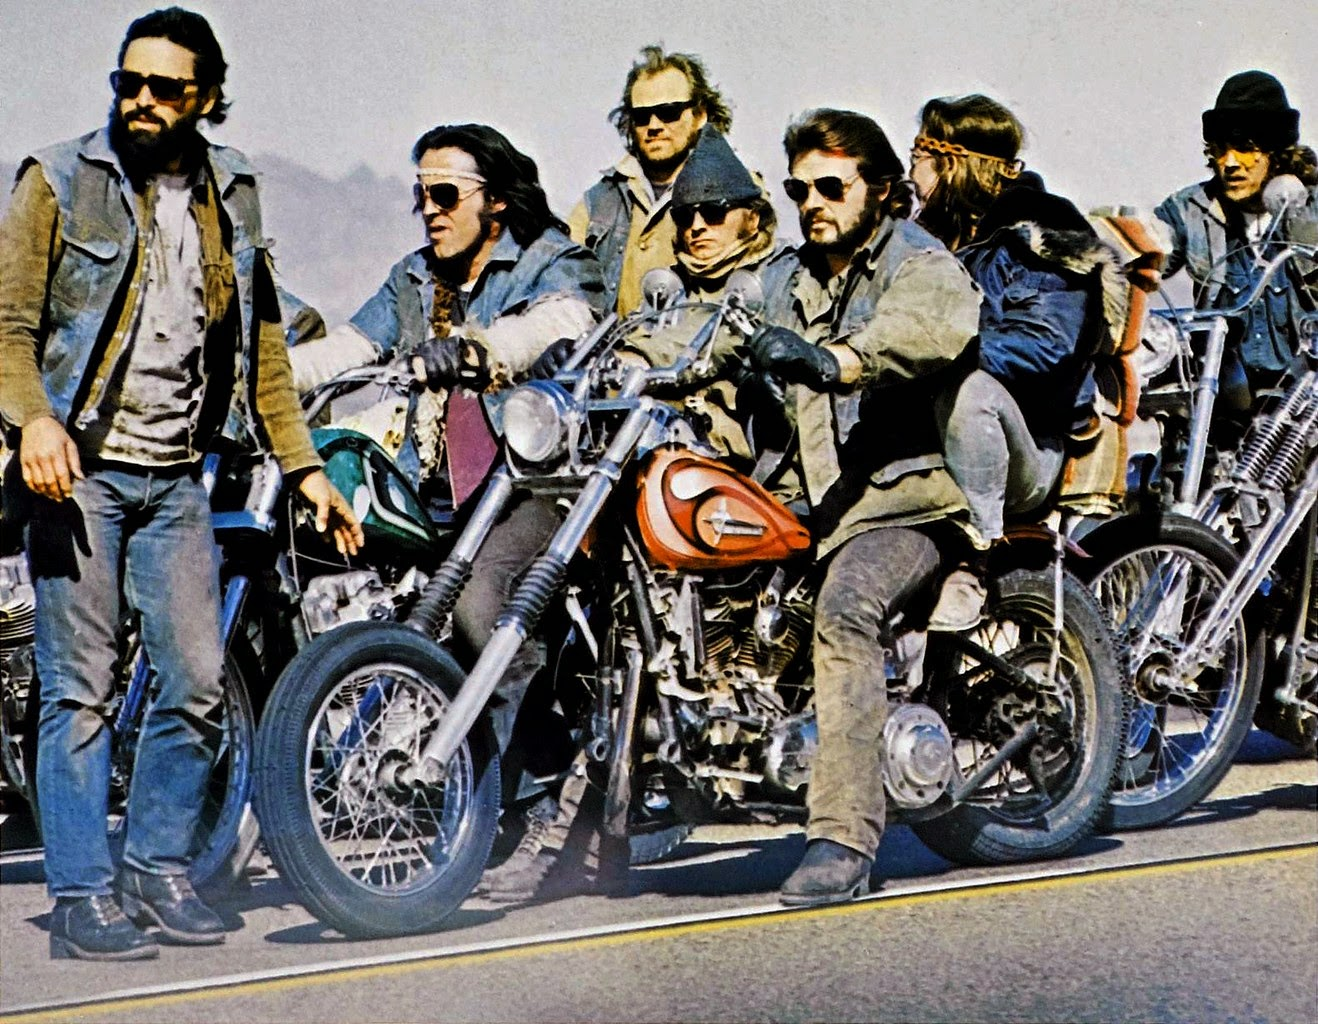 The biker gang in Werewolves on Wheels (1971)